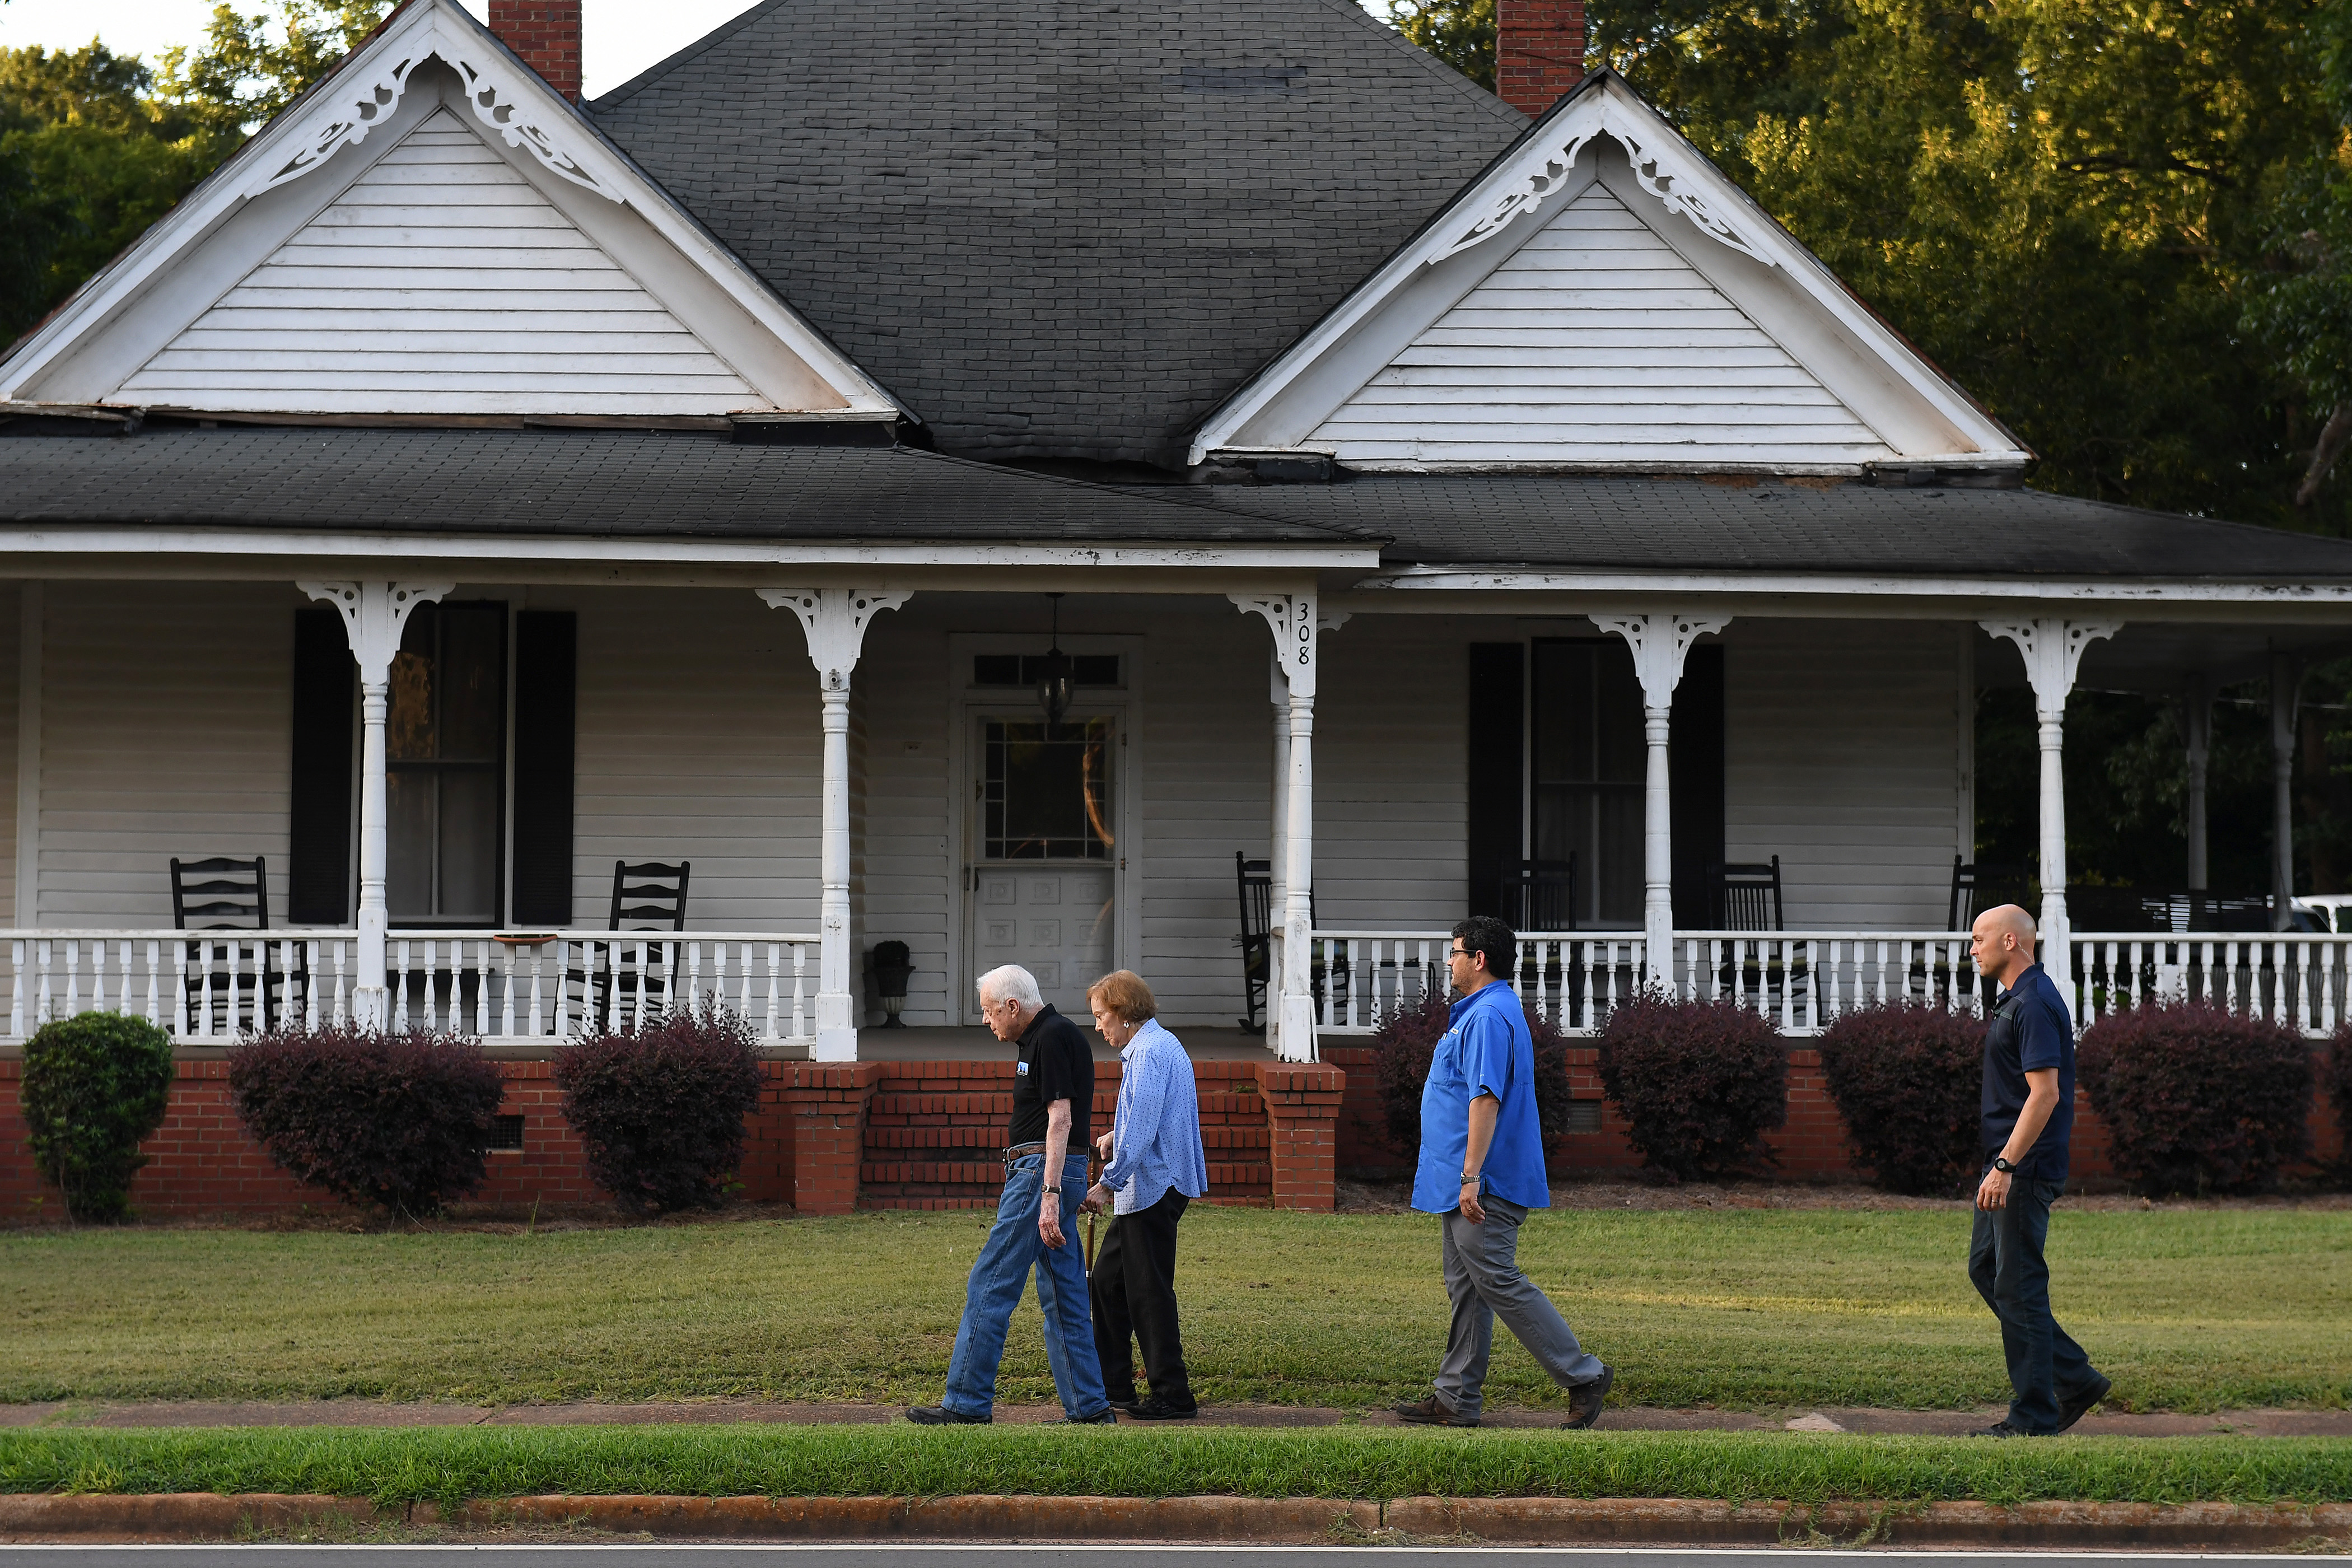 Jimmy and Rosalynn Carter walk home with Secret Service agents along West Church Street after having dinner at a friend's house in Plains, Ga., their hometown. MUST CREDIT: Washington Post photo by Matt McClain